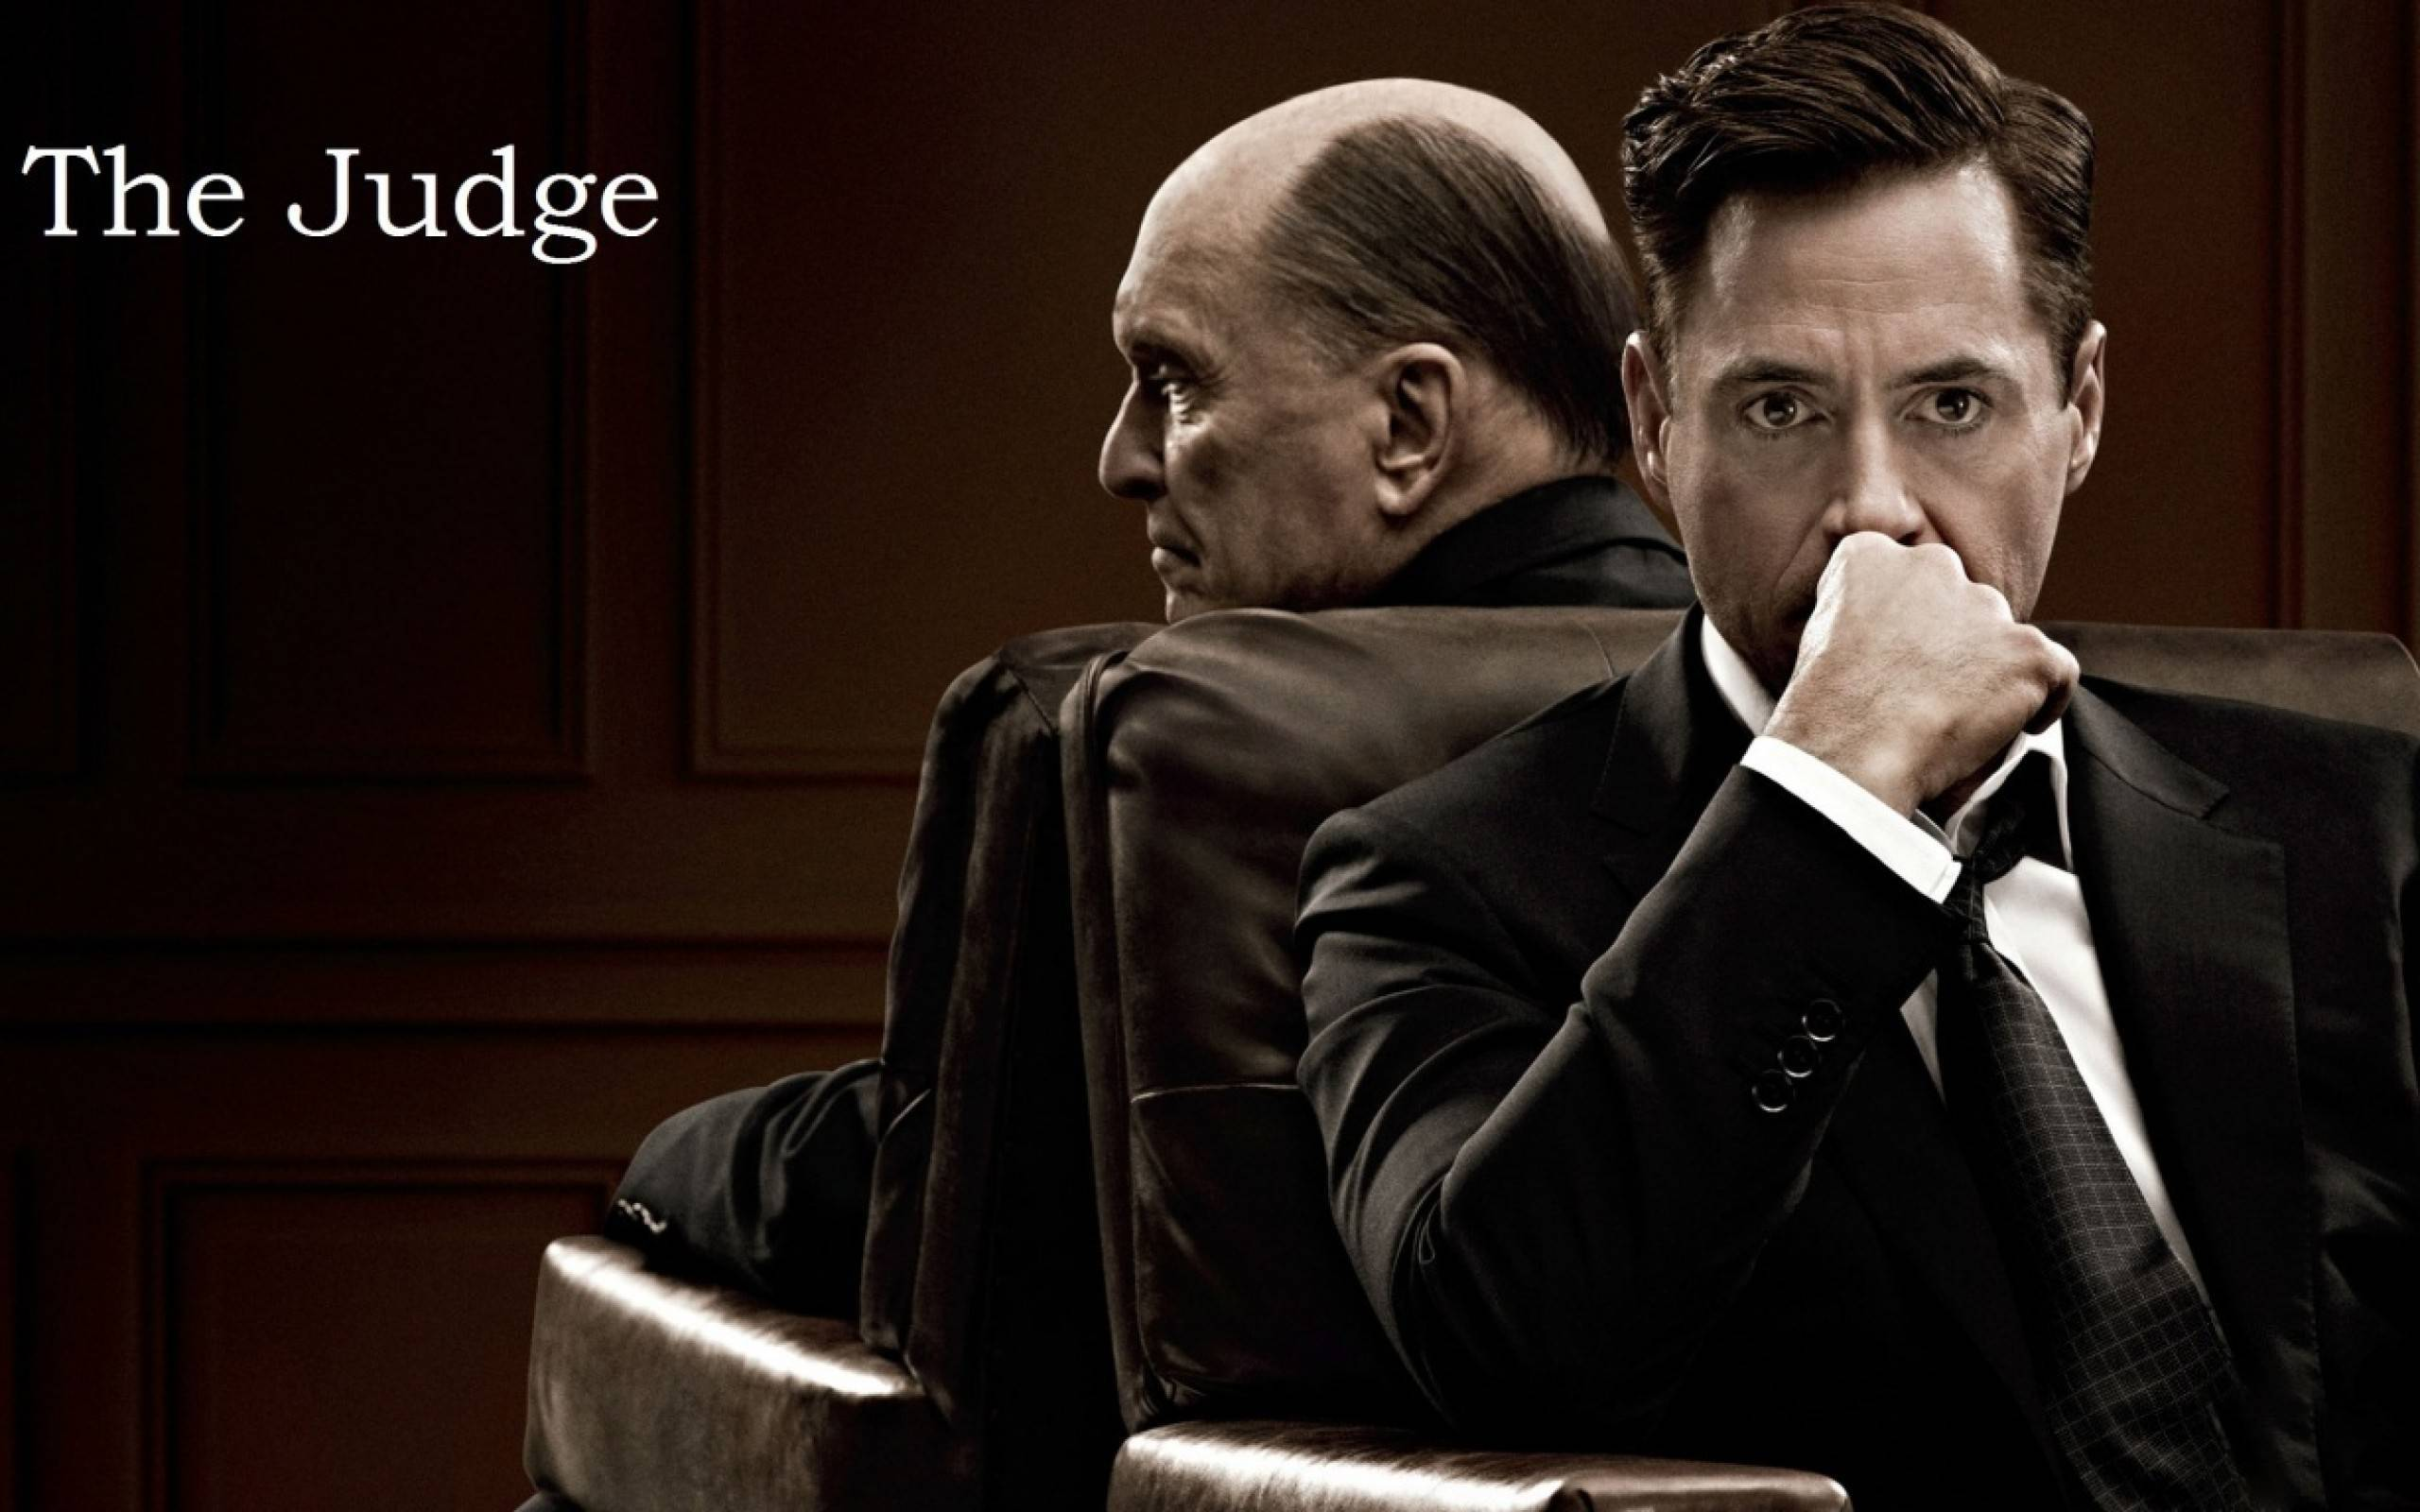 The Judge, Robert Downey Jr. avvocato nel nuovo trailer